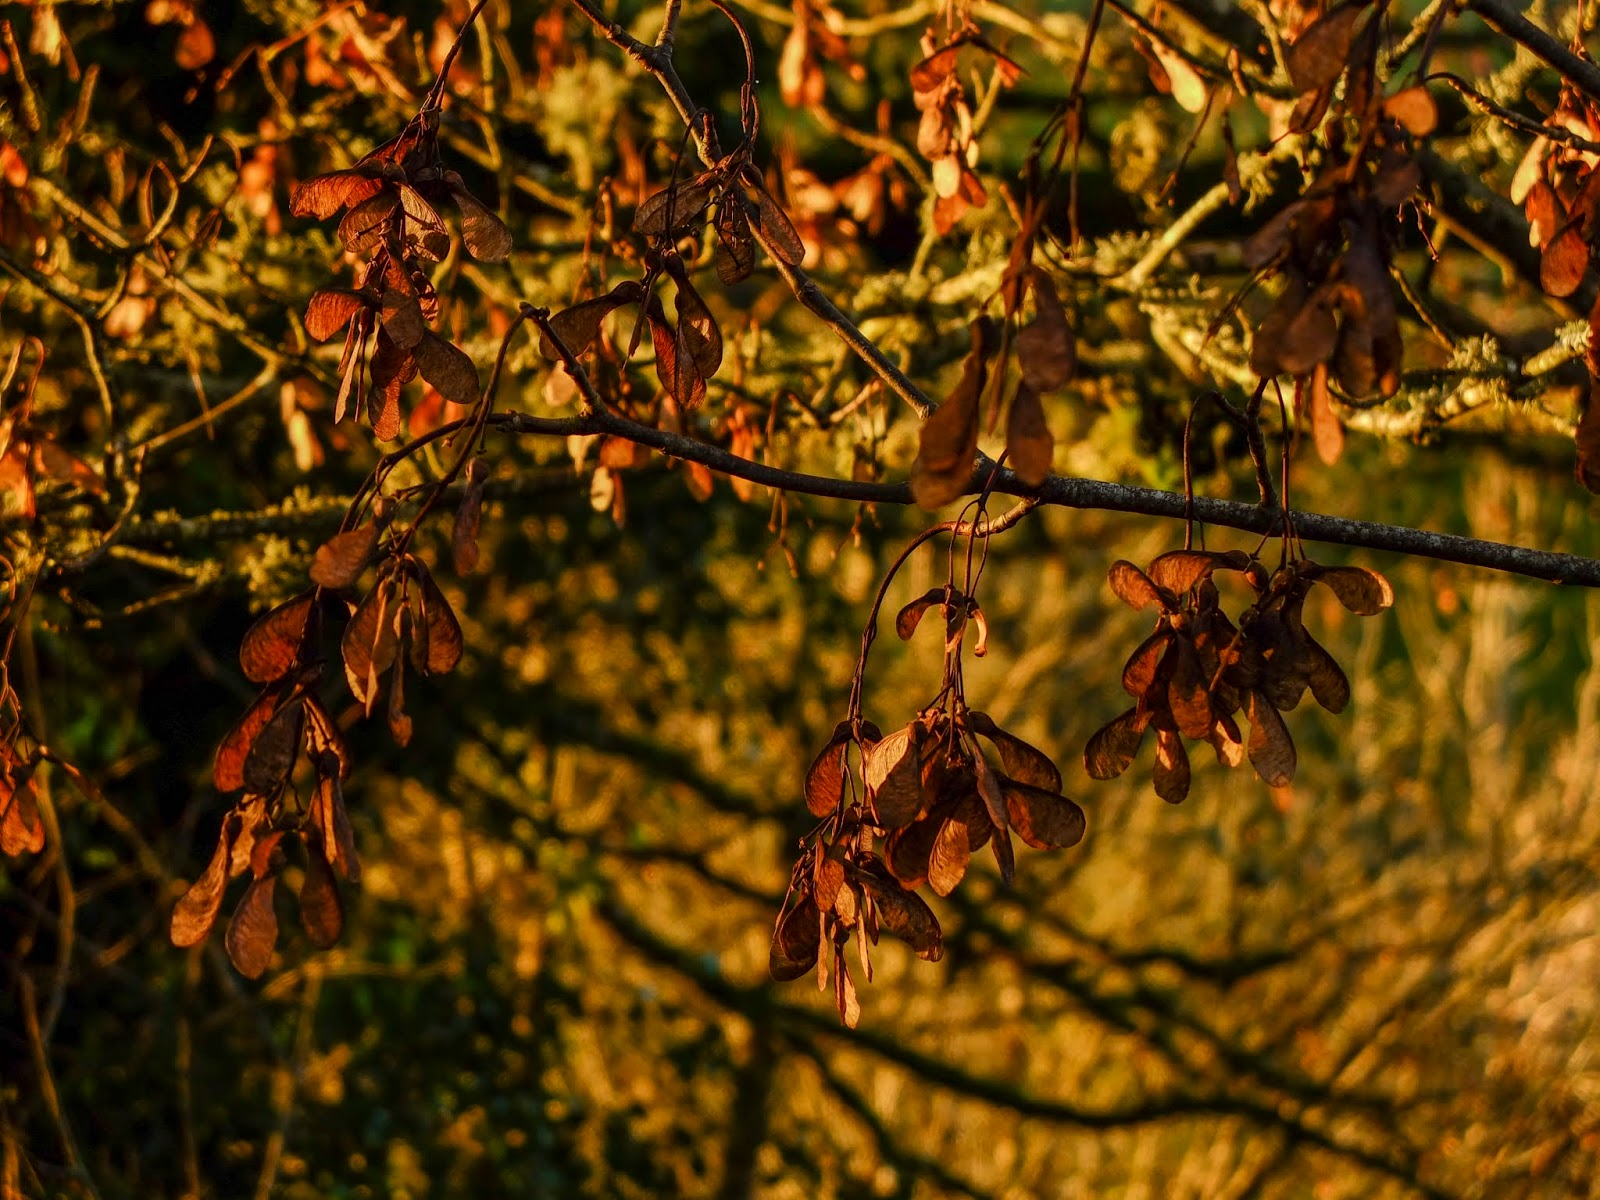 Sycamore Maple seeds hanging off branches during golden hour sunset.